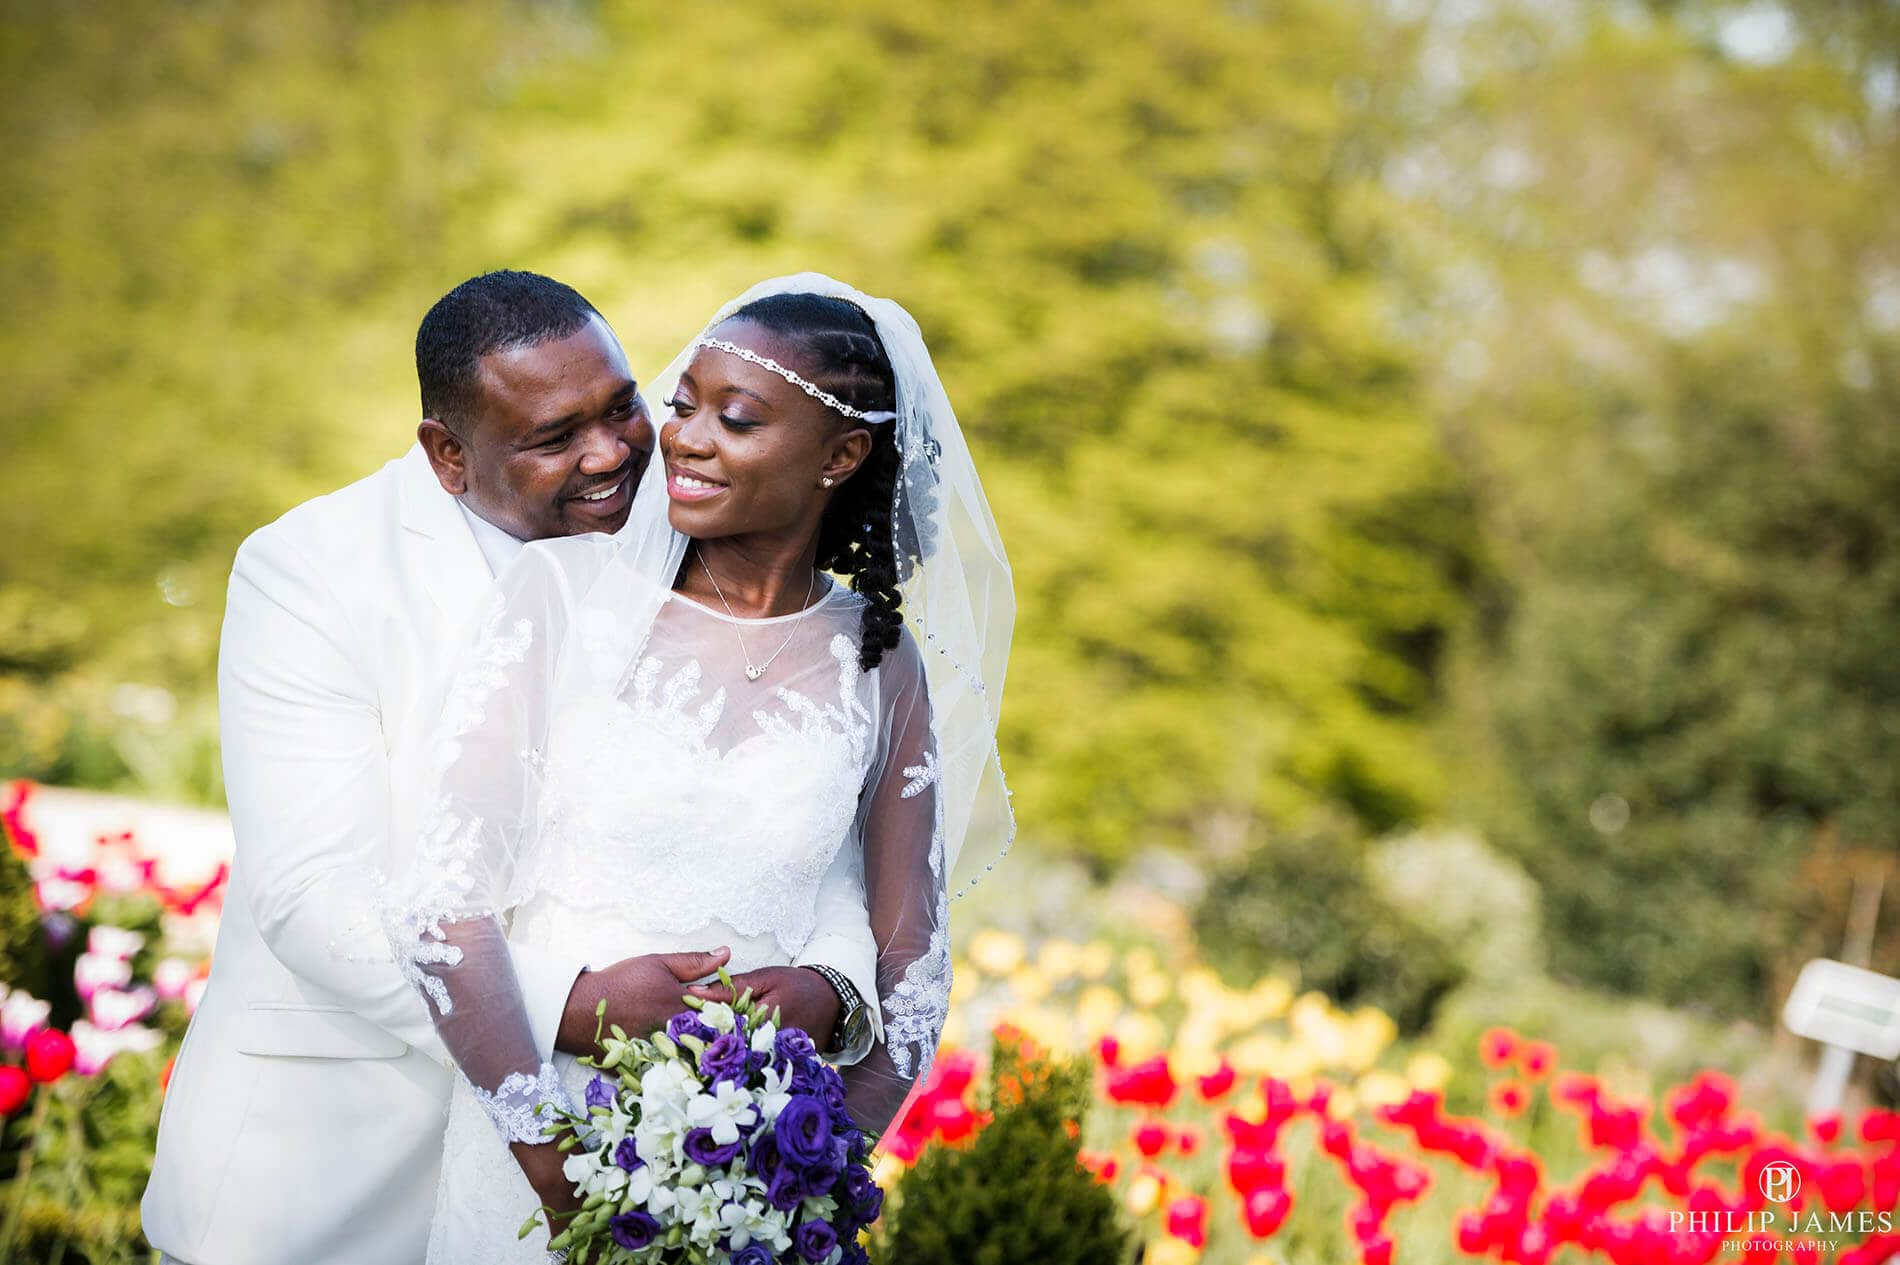 Jamaican Wedding Photographer | Philip James Photography